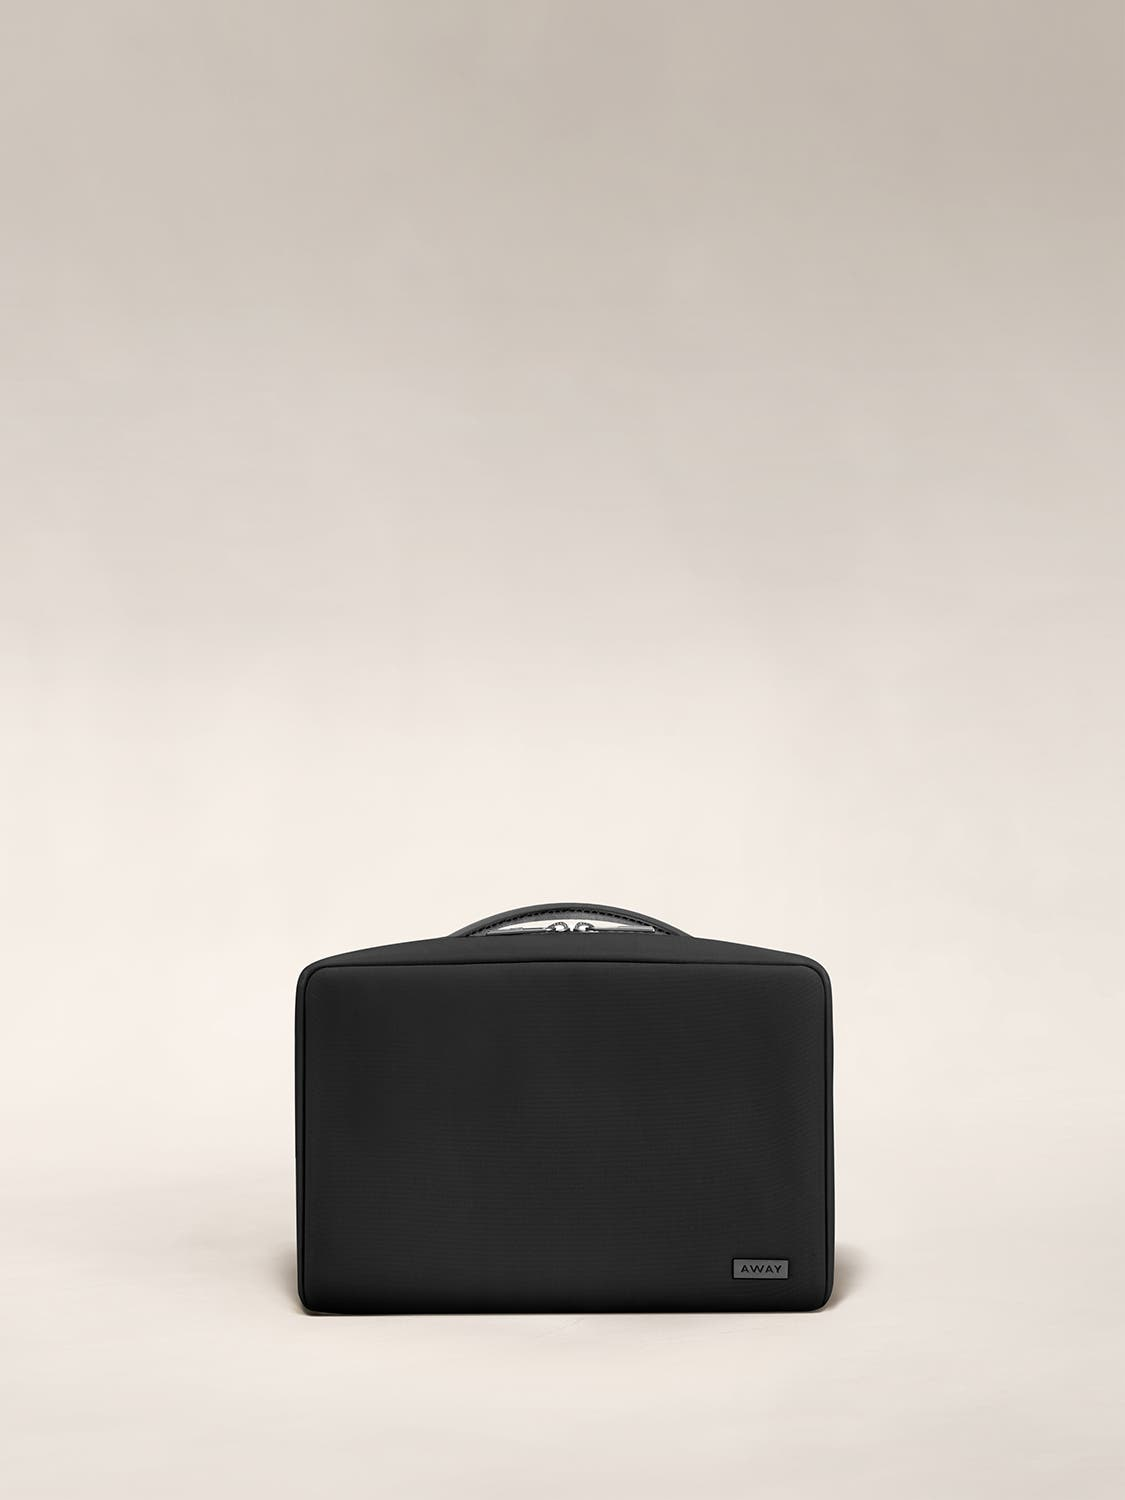 Small travel toiletry bag in the color black by Away.